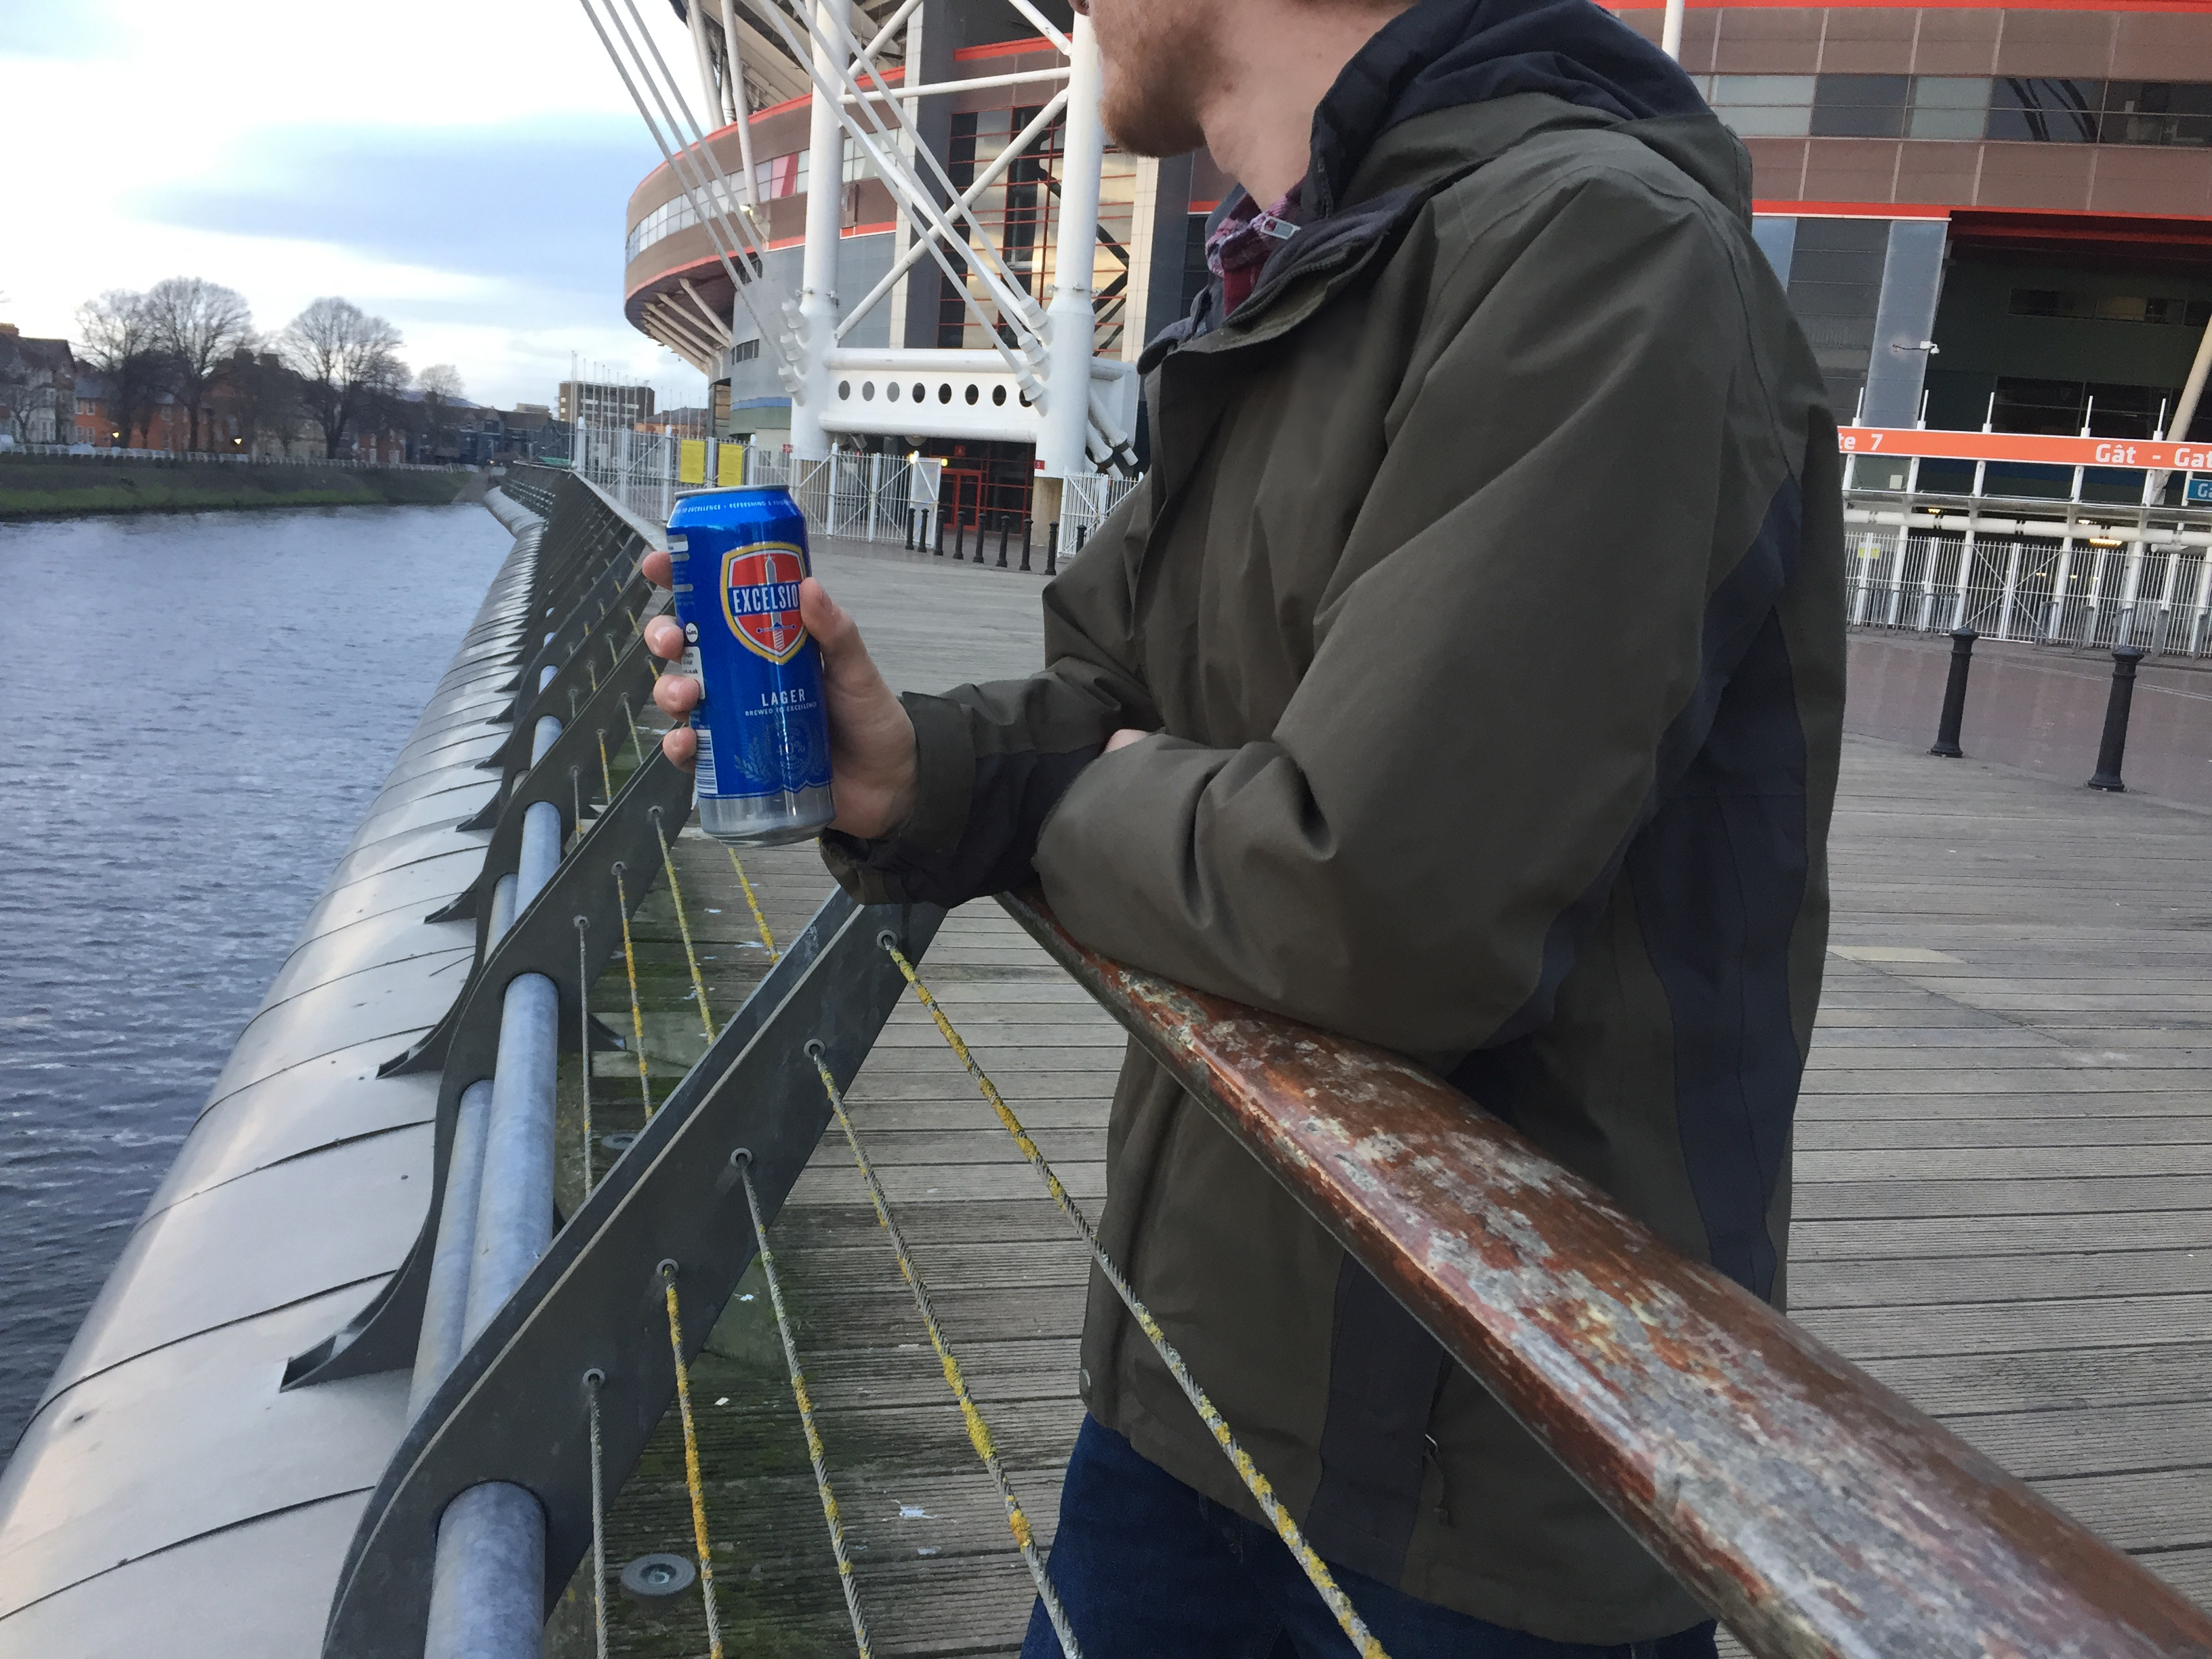 Man drinking alcohol in Cardiff